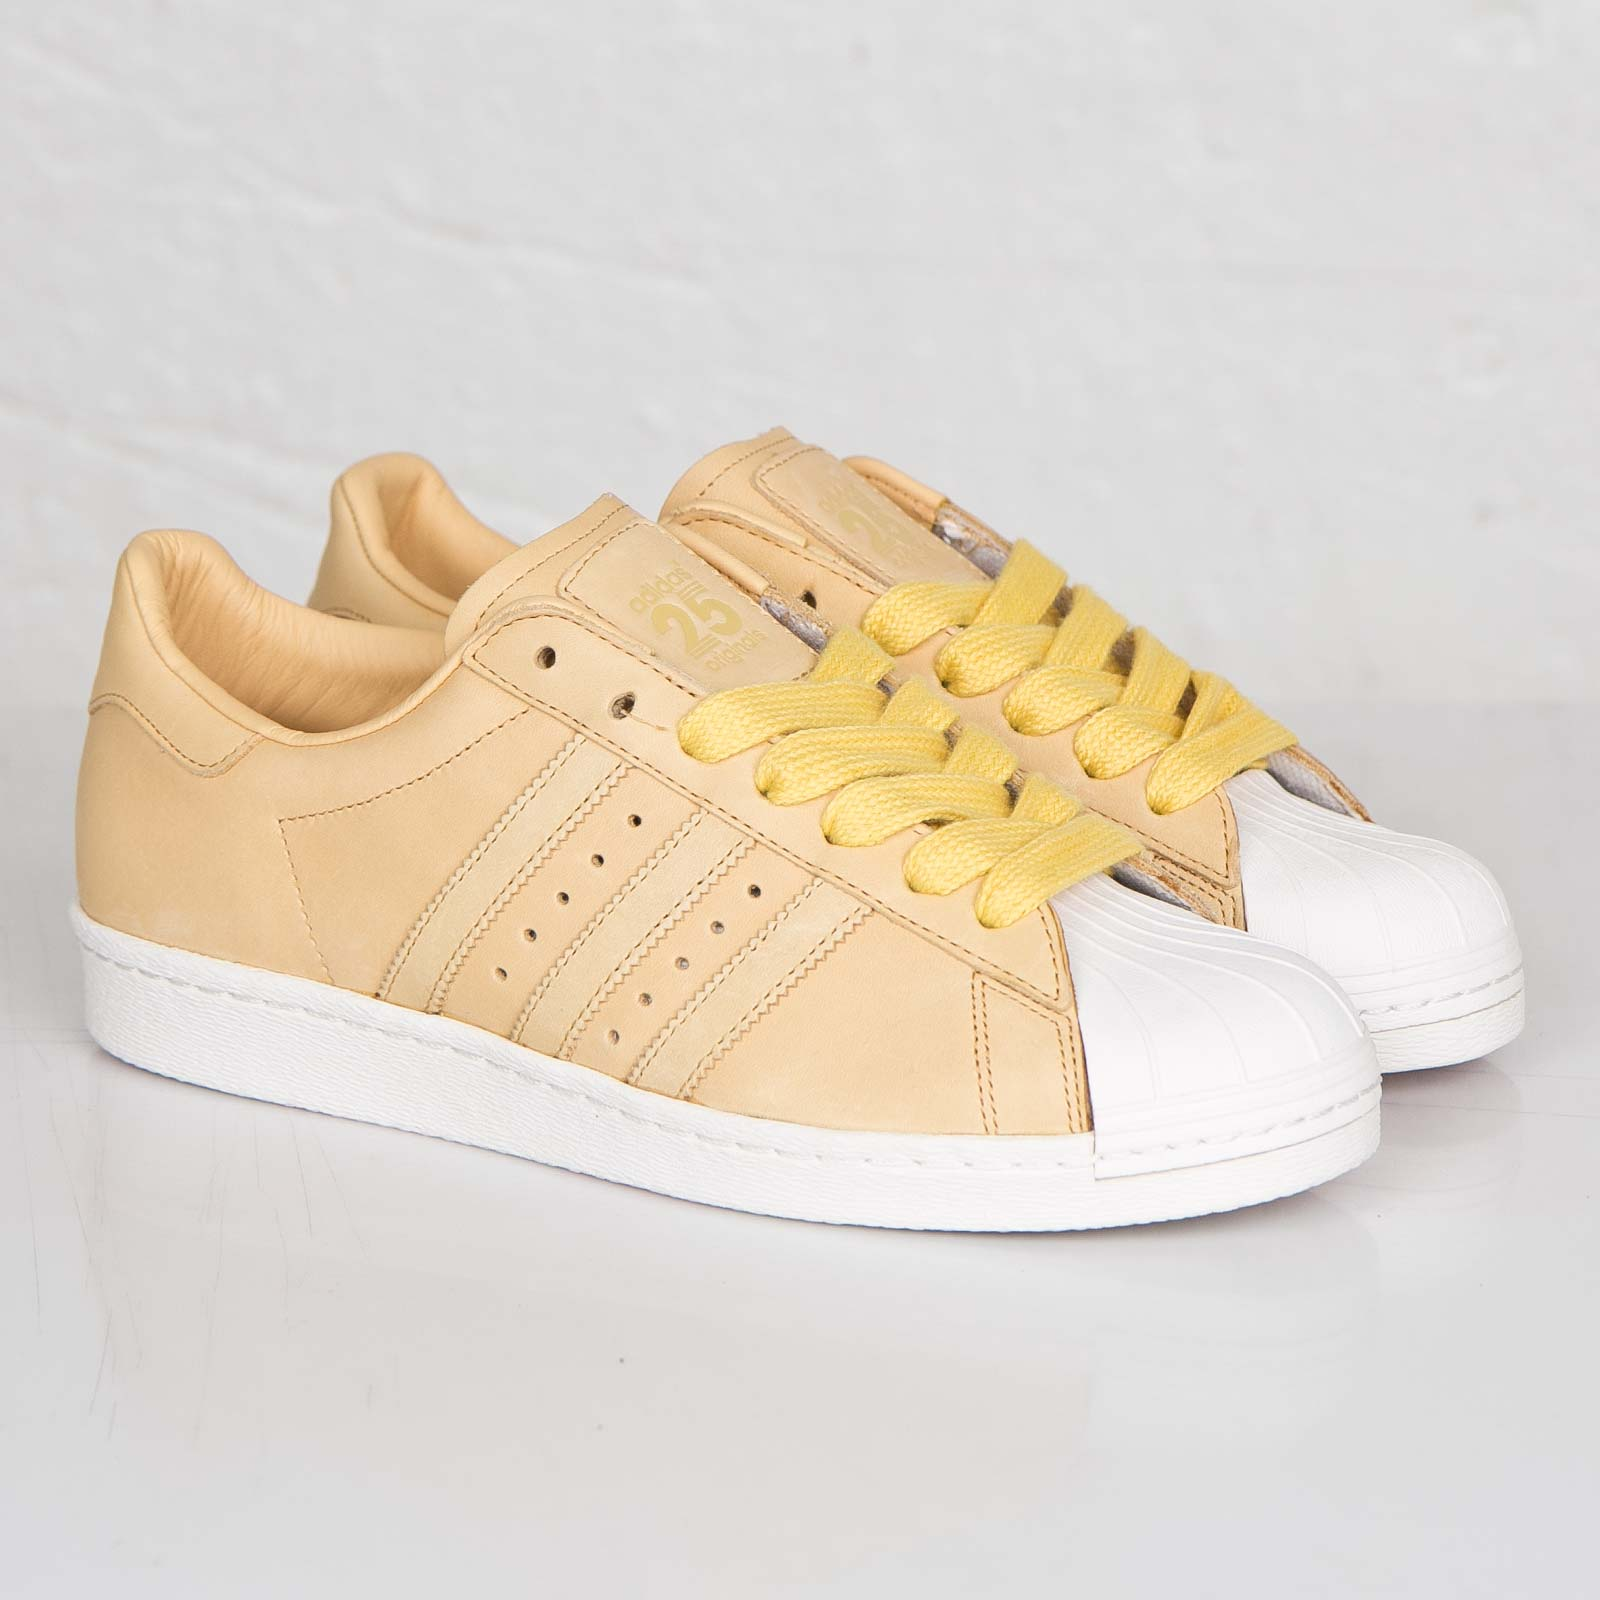 New Adidas Superstar Originals Rare Nigo